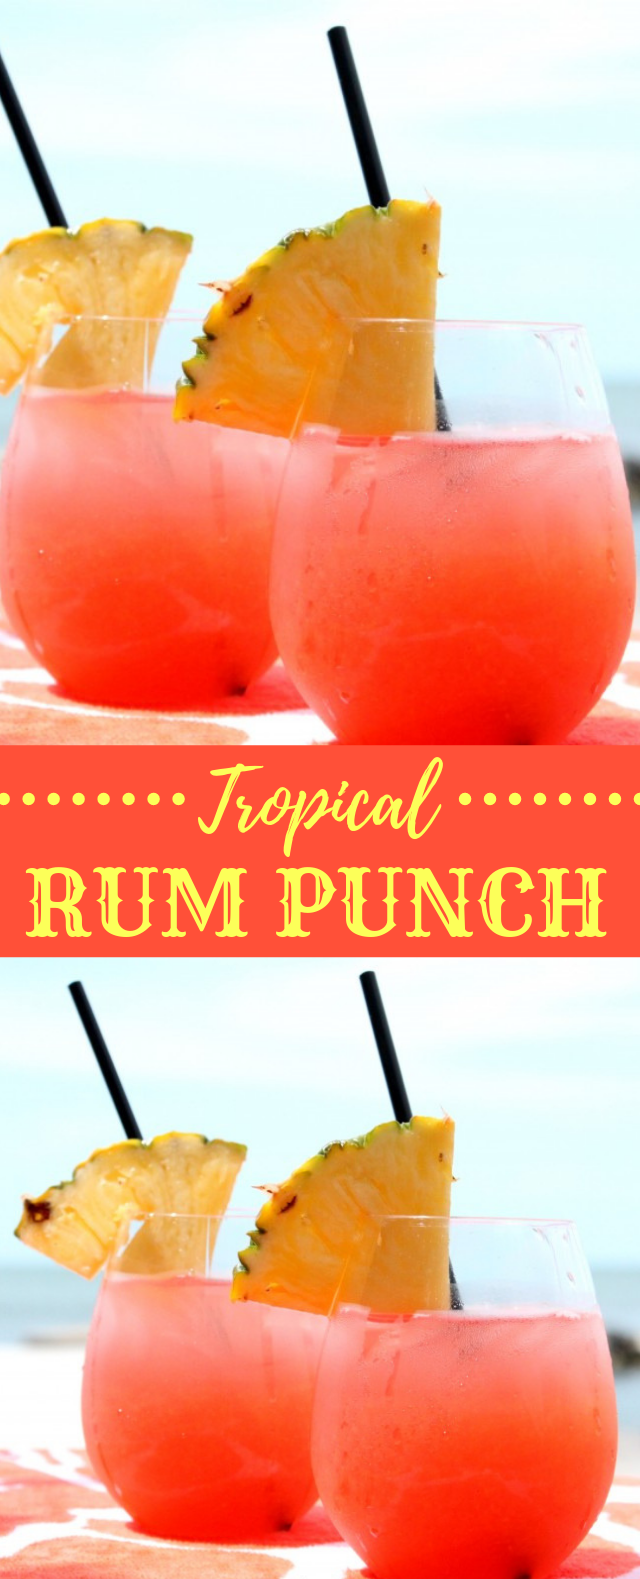 TROPICAL RUM PUNCH RECIPE #summerdrink #drinks